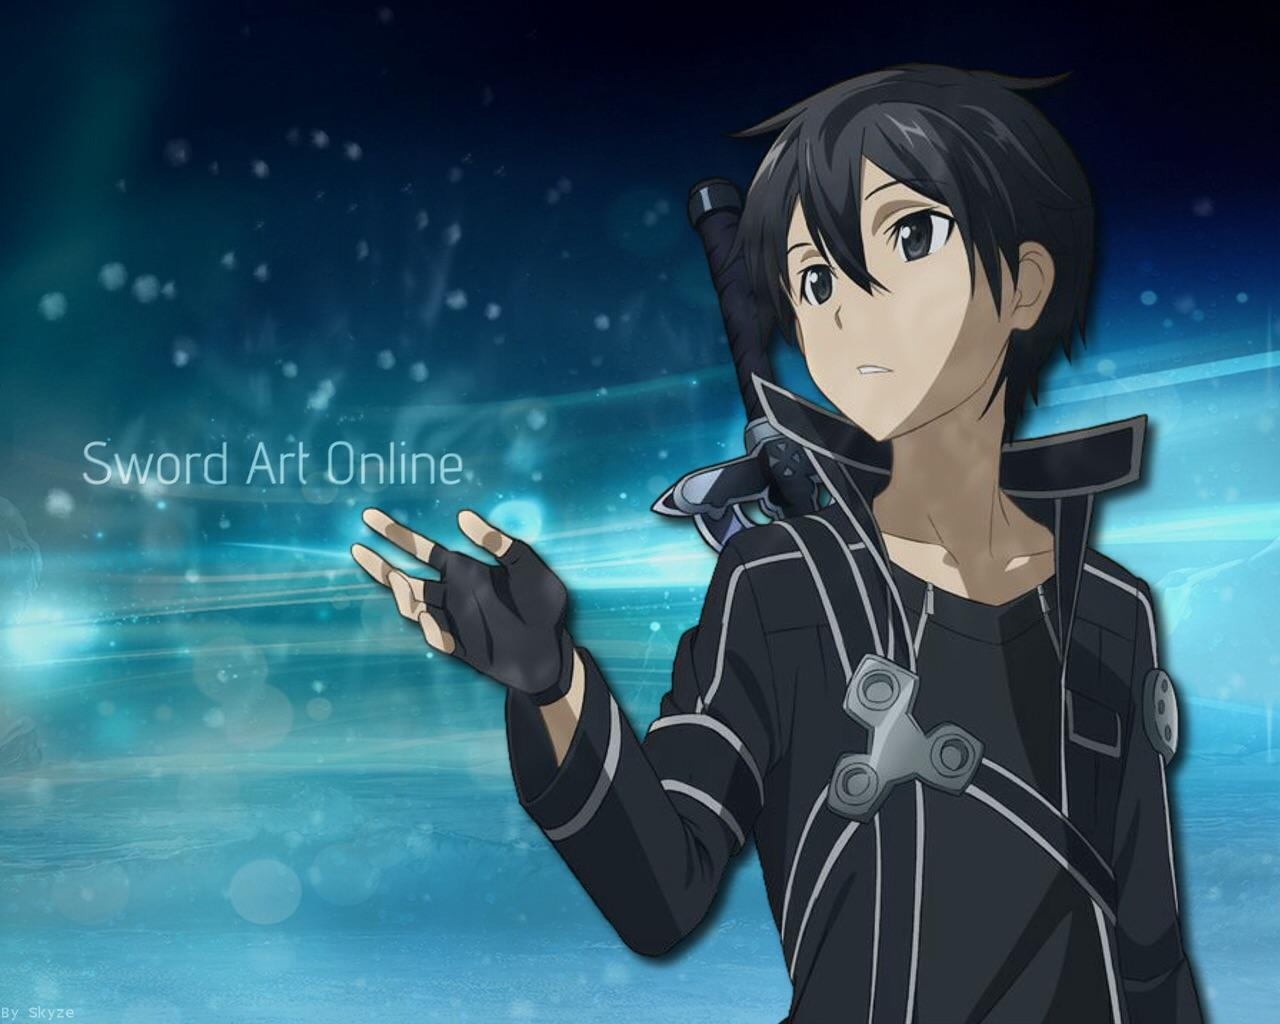 Who is the best match for Kirito?